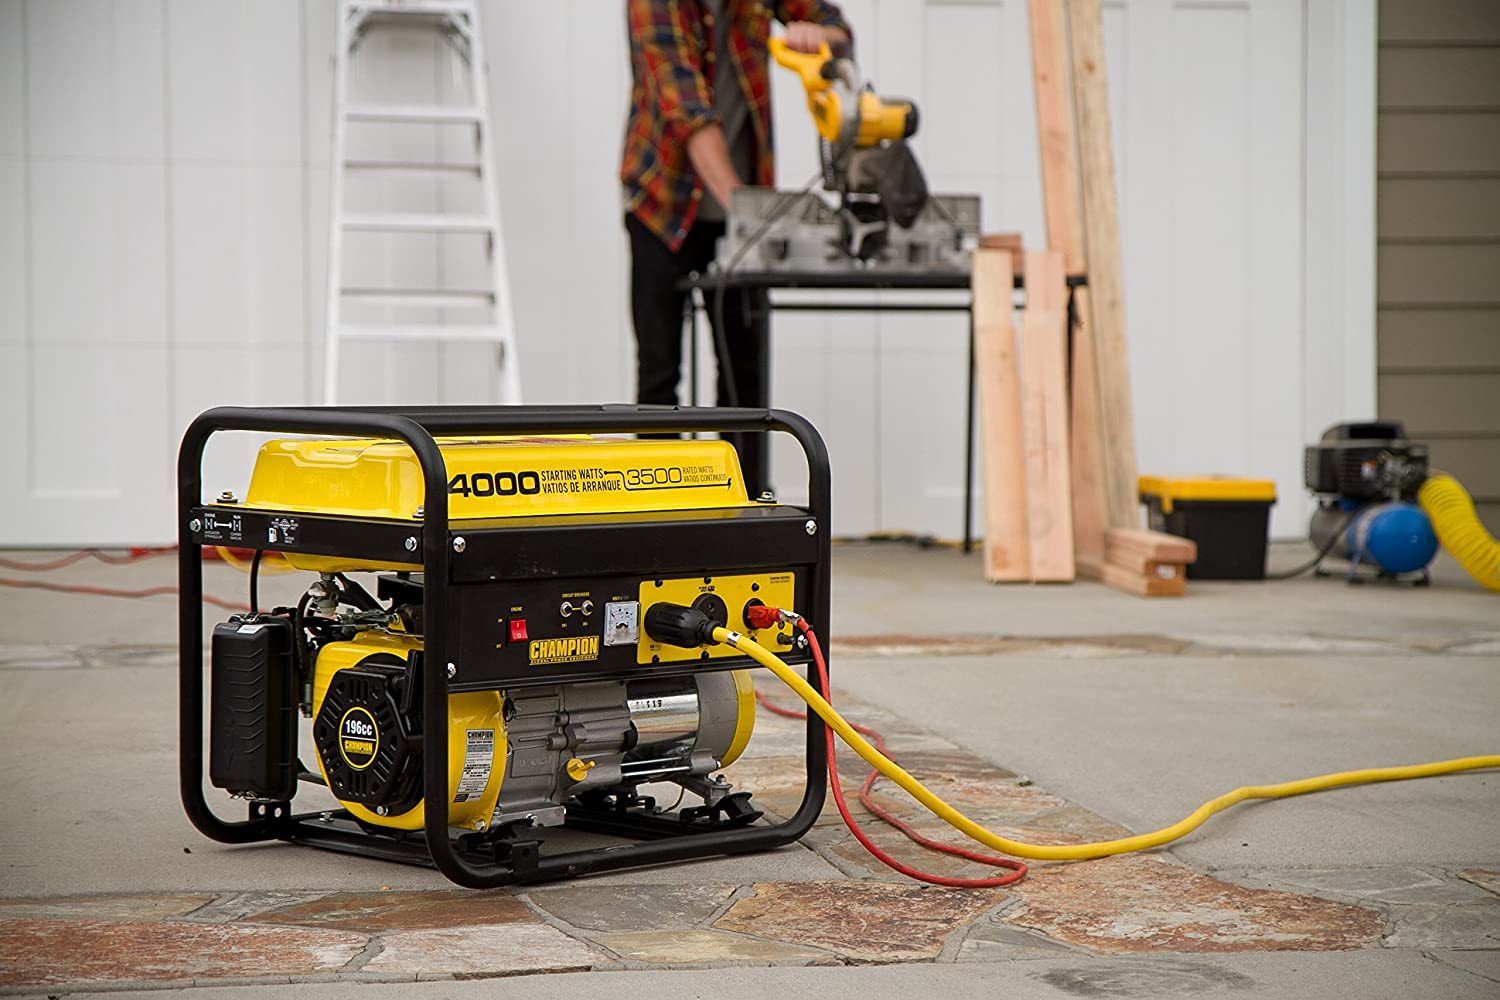 Champion 4000-watt generator is suitable for operating a vast array of electric tools